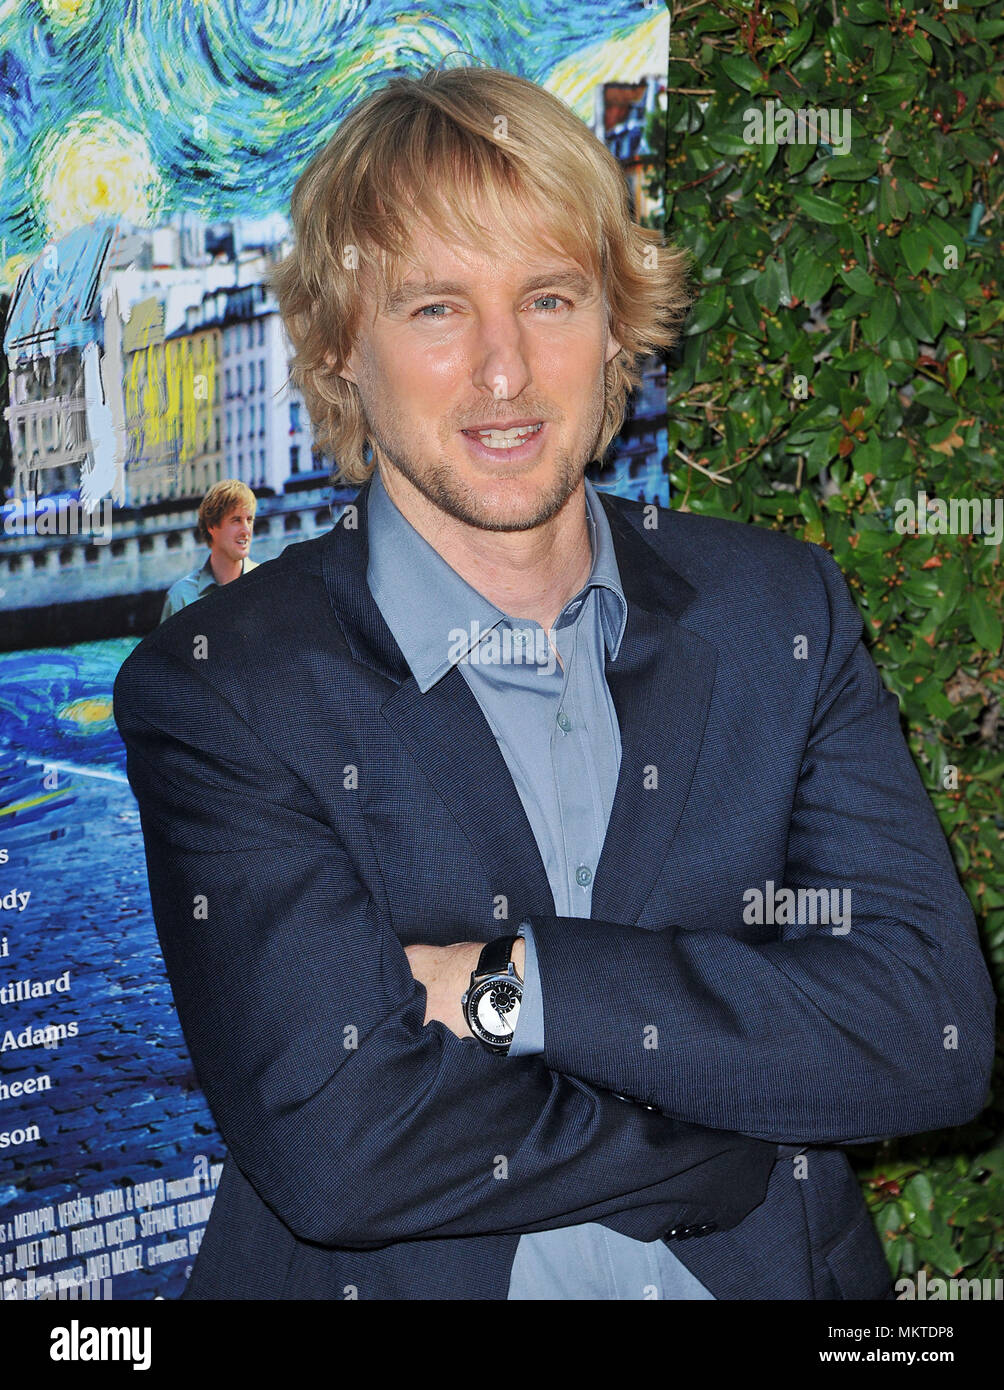 Owen Wilson at Midnight in Paris Premiere at the Academy of